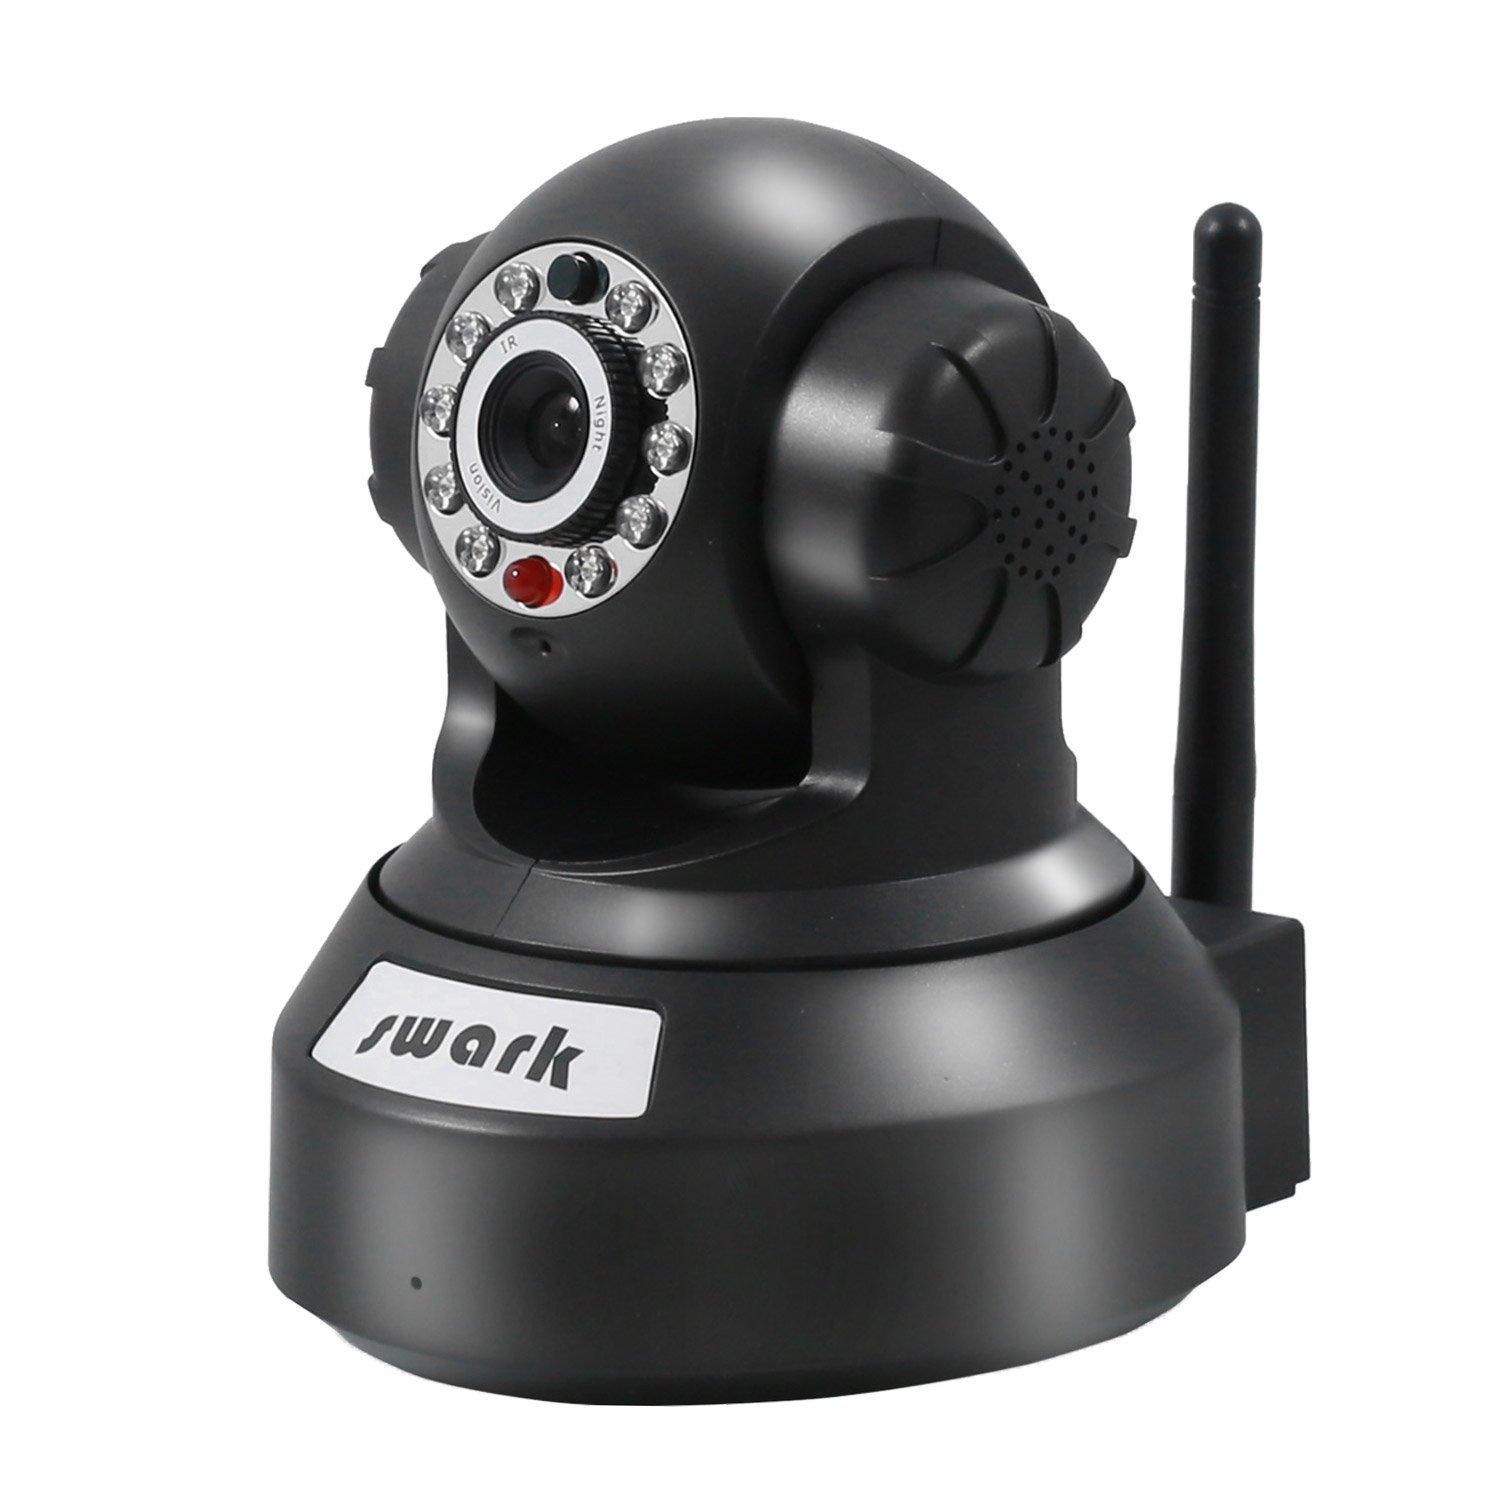 Swark WiFi Camera Pet Camera, Wireless IP Camera 720p HD Night Vision, Pan Tilt Zoom Home Camera with Android/iOS/PC Software - Black